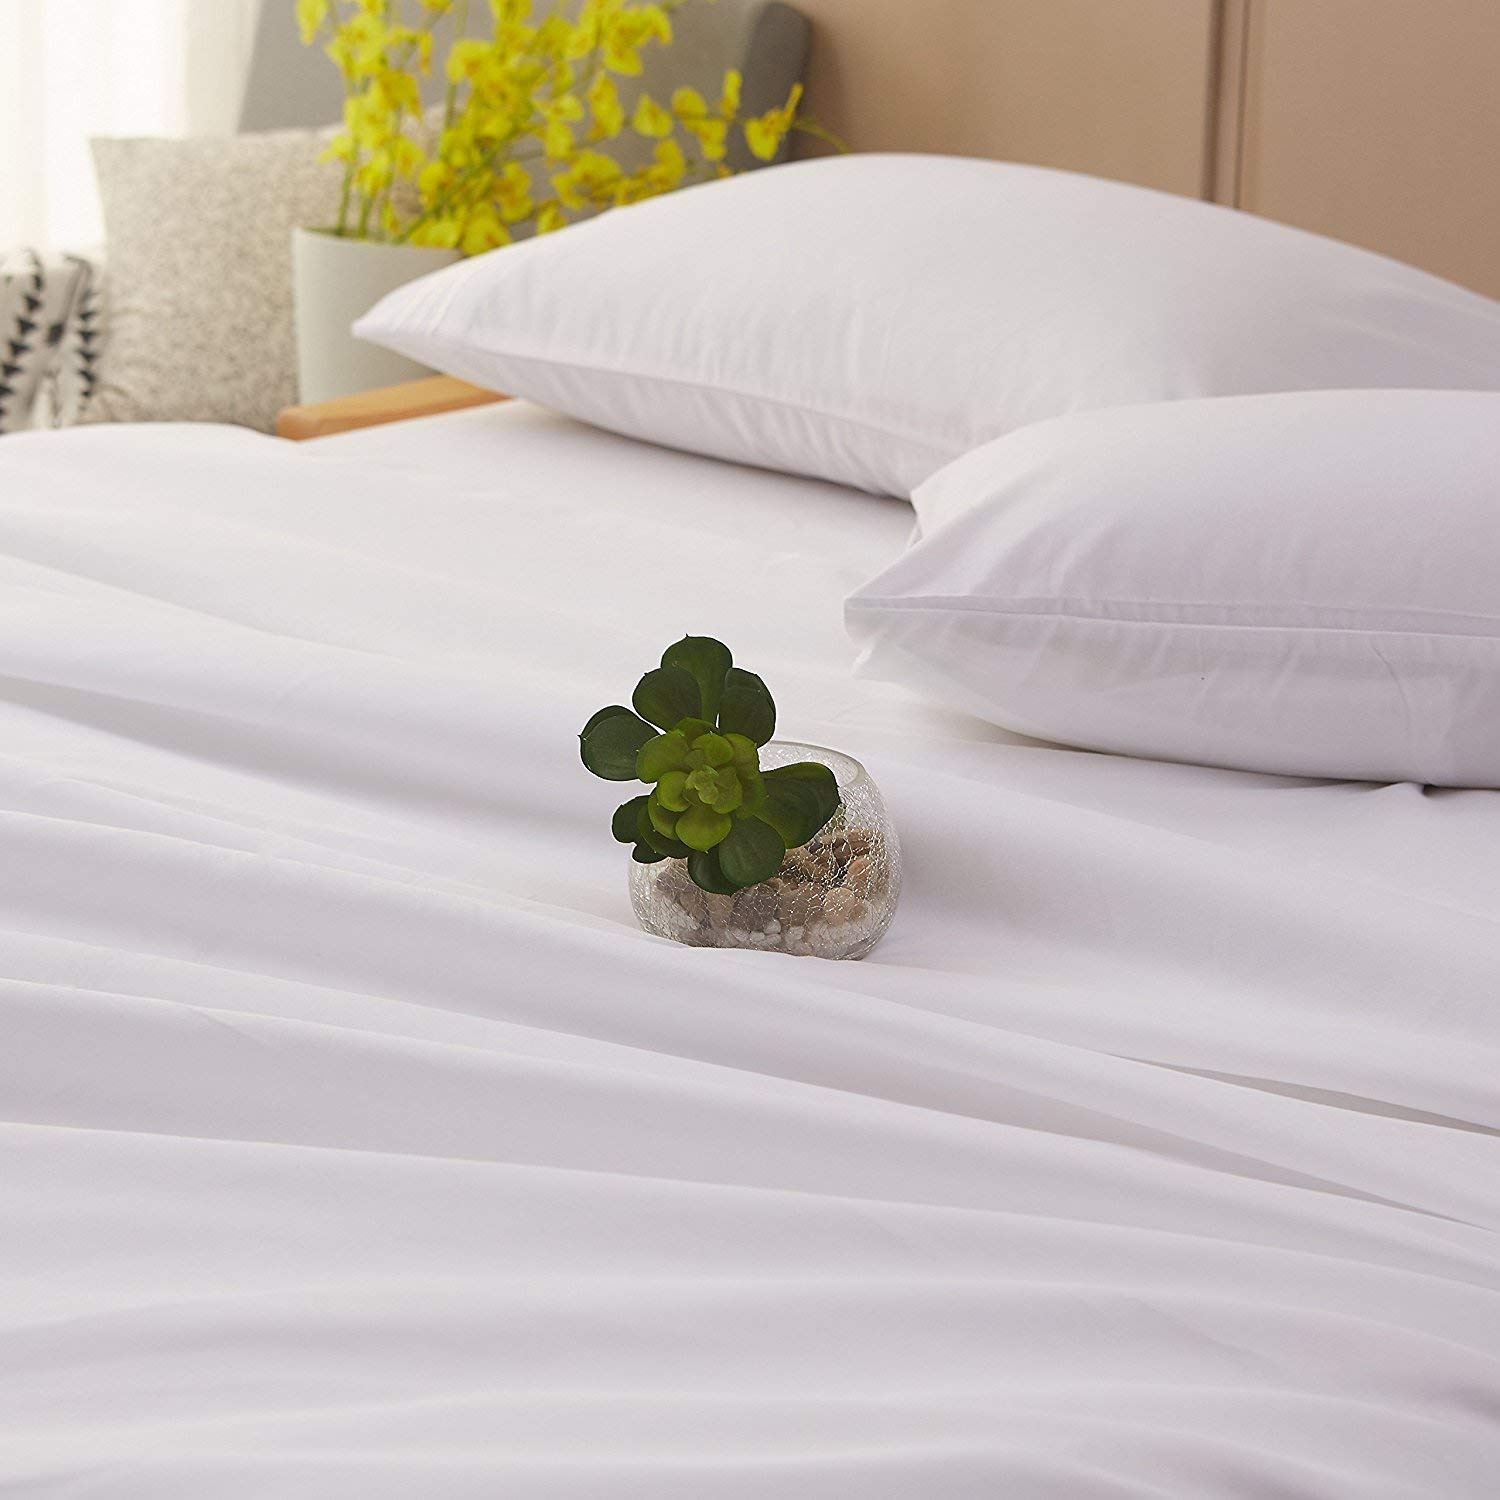 Image of Minor Monkey's Egyptian Cotton 1000 Thread Count Sheet Set - Best Egyptian Cotton Sheets